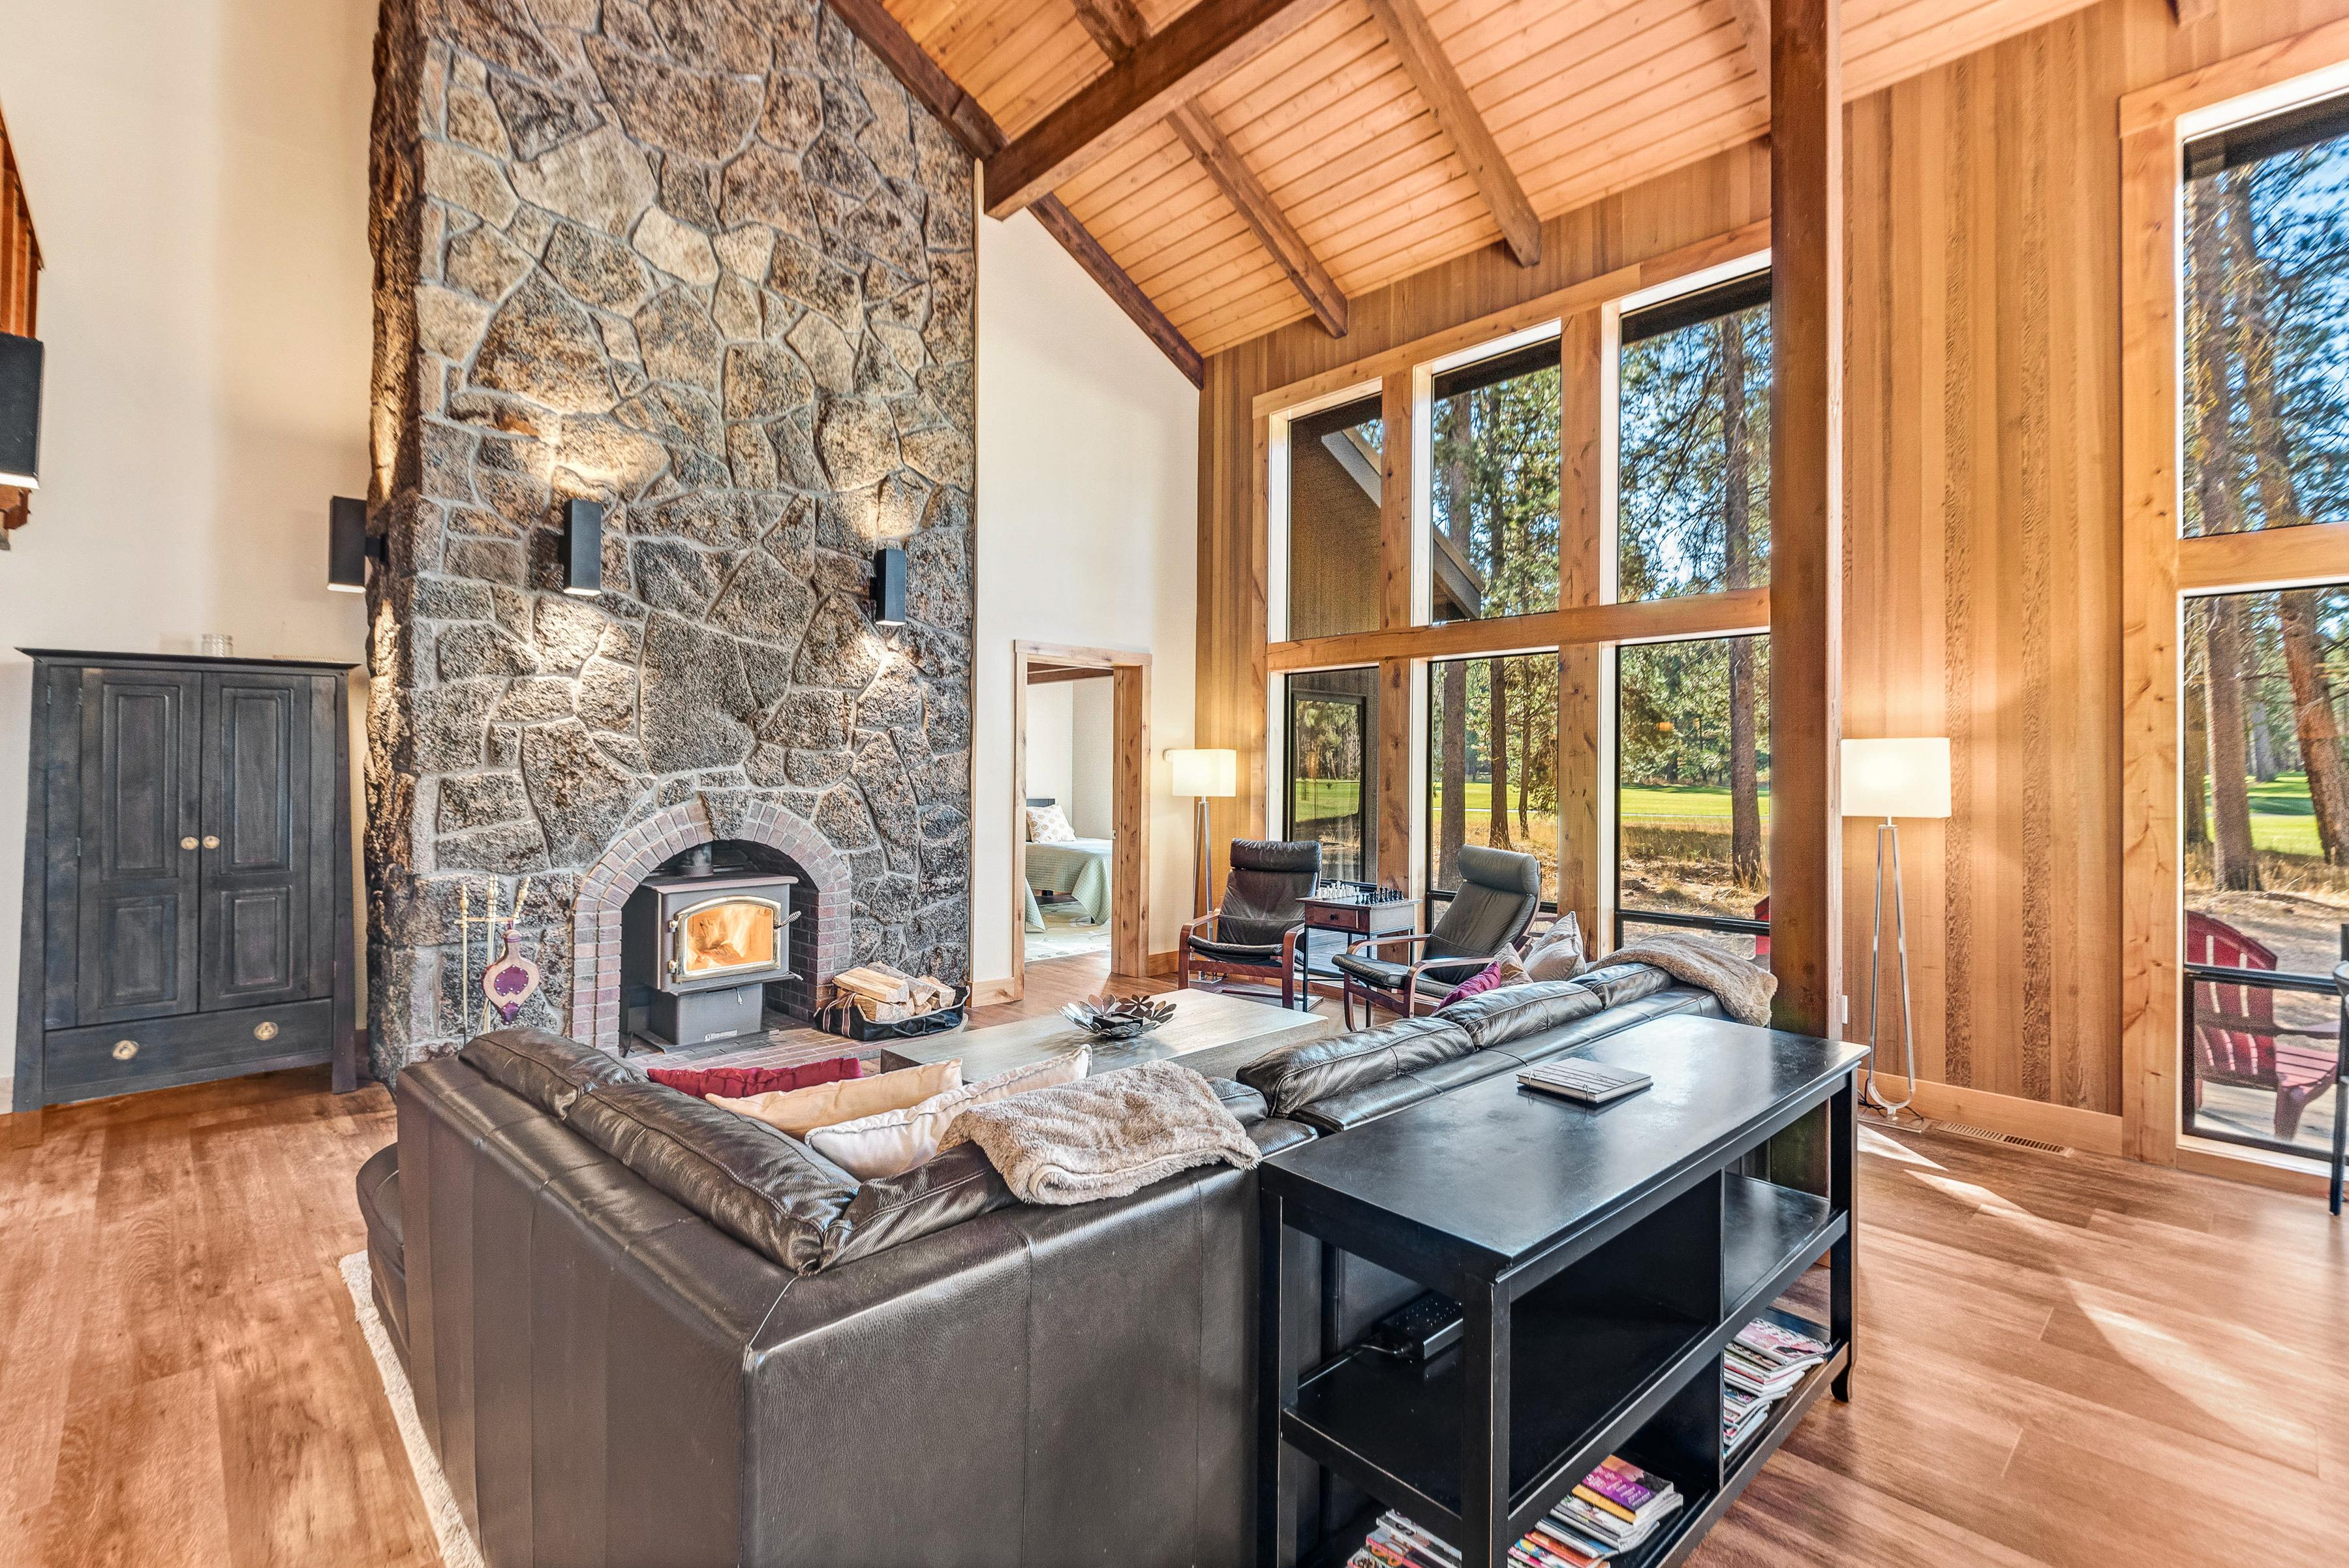 Aspen Lodge | Large Deck, Hot Tub & Fairway View